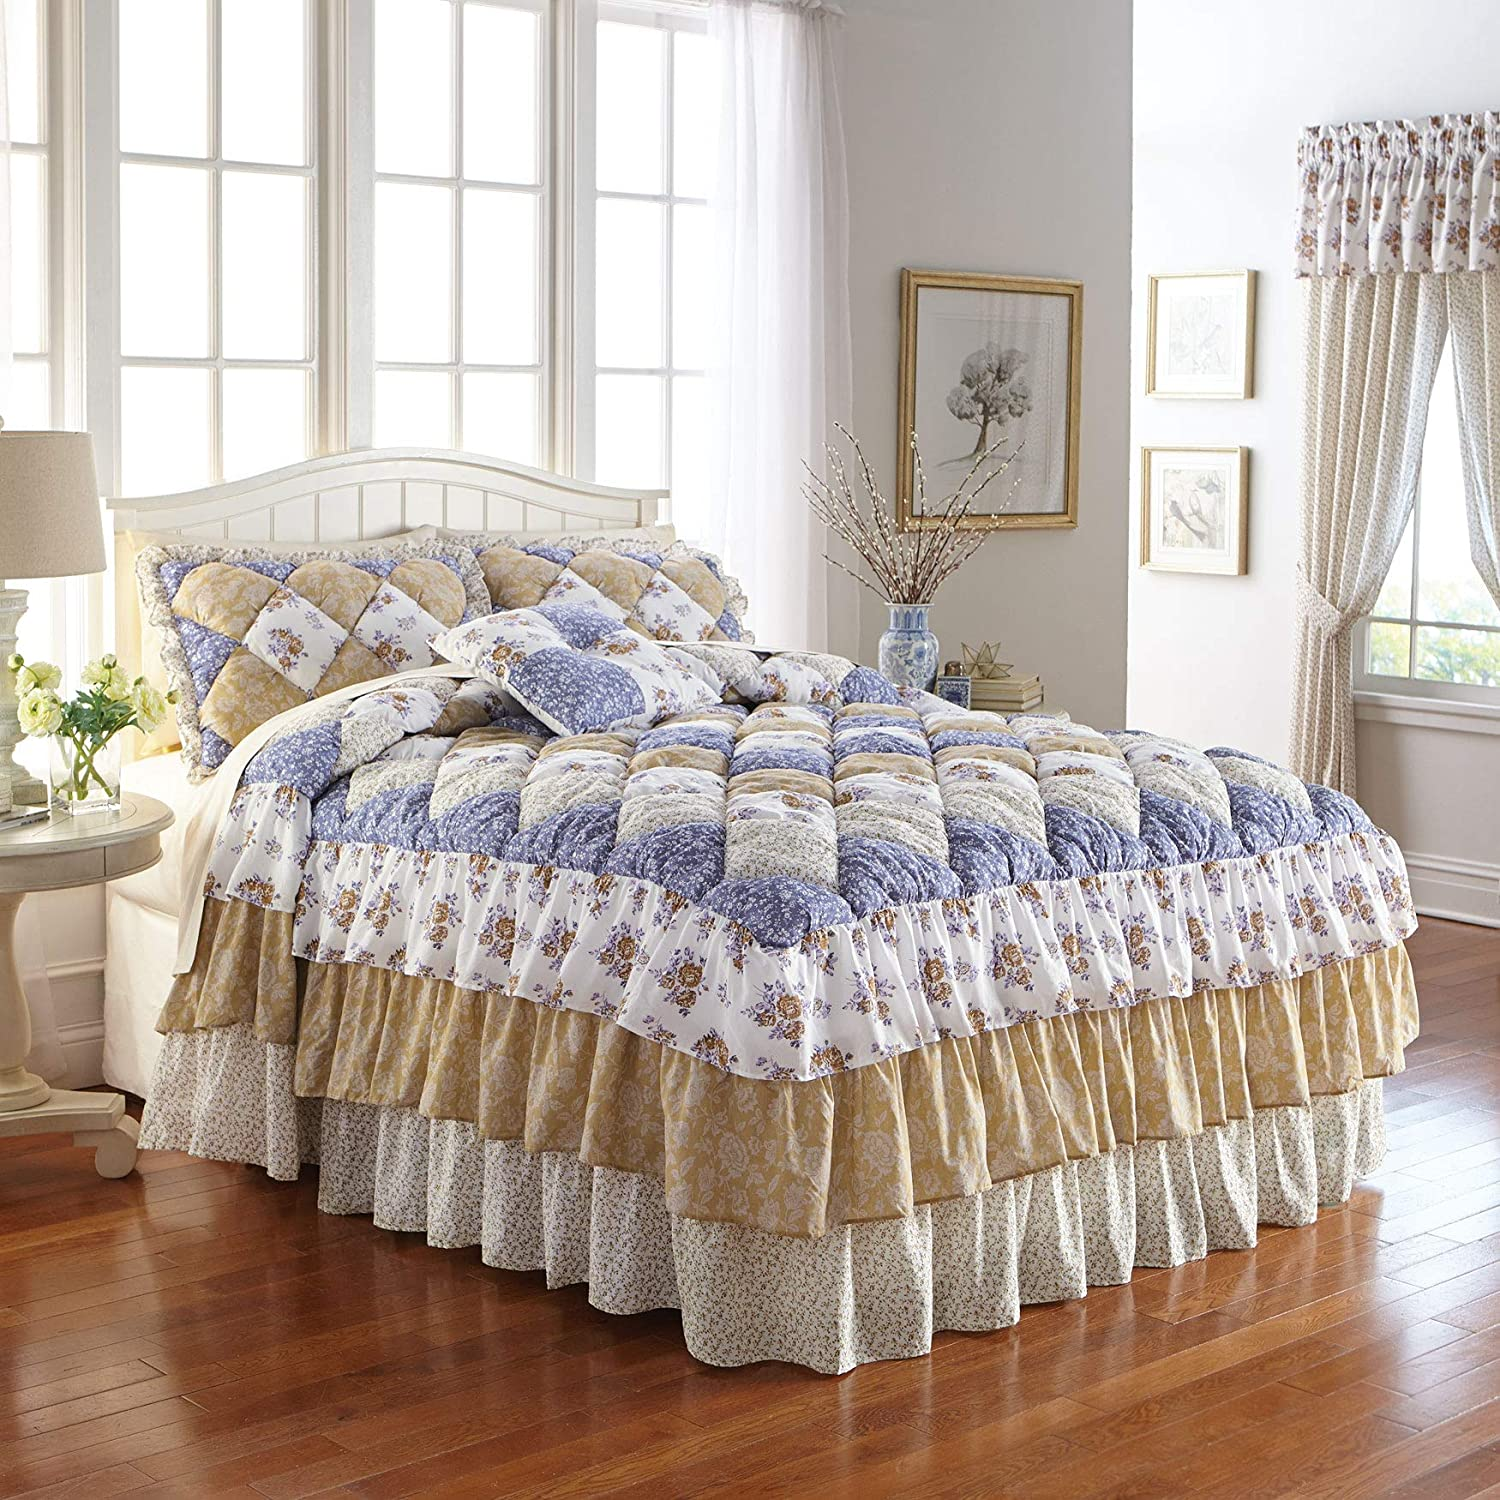 BrylaneHome Alexis Bedspread - Full, Gold Blue